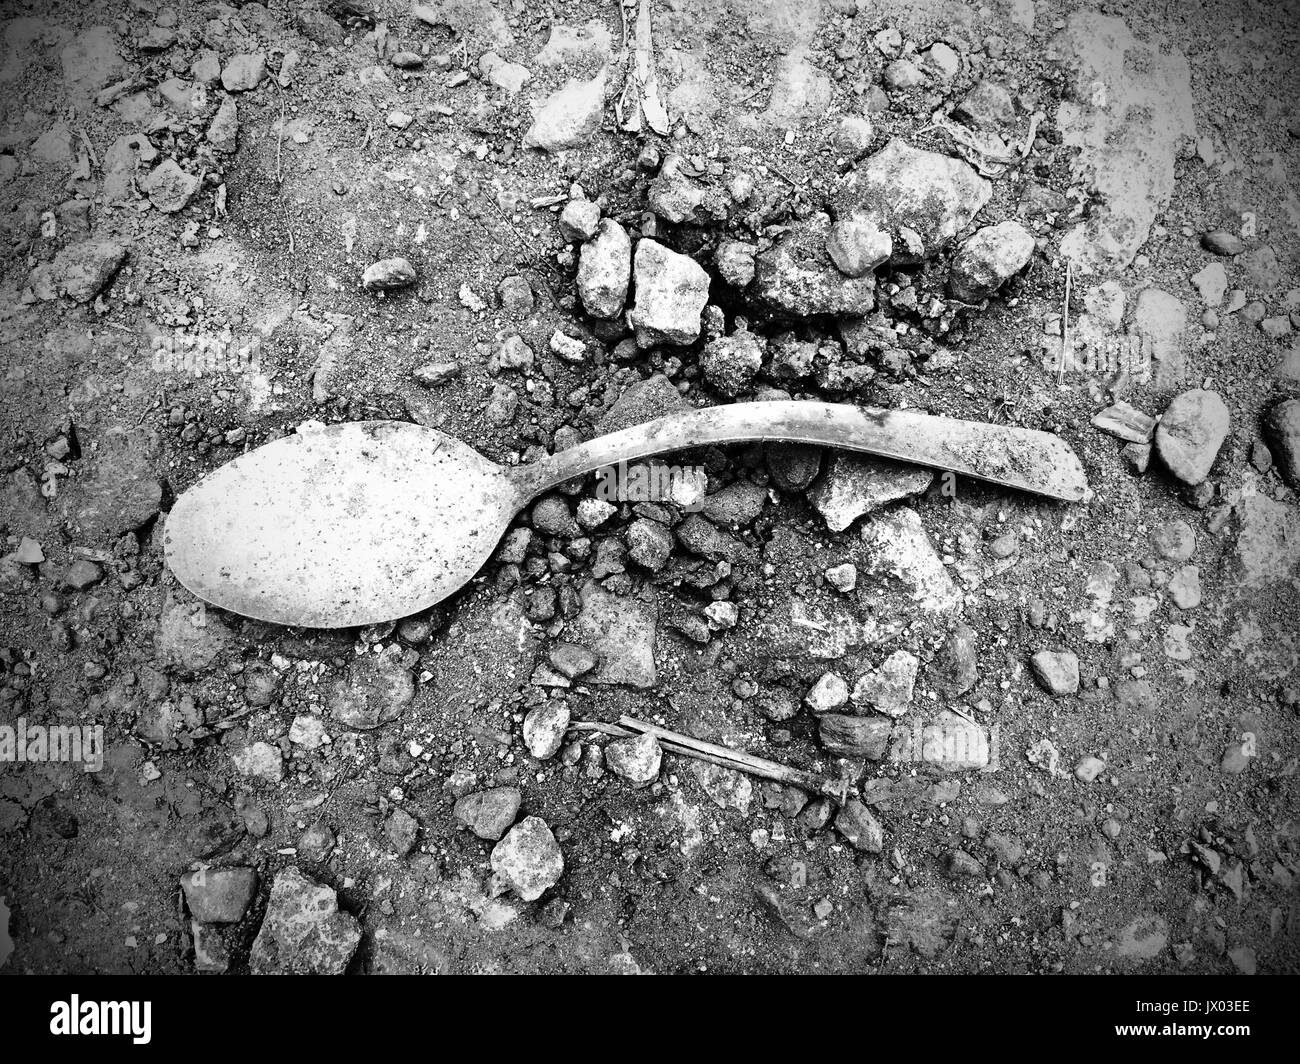 A distorted and dirty spoon in the ground is a fitting symbol of poverty in the Philippines. - Stock Image